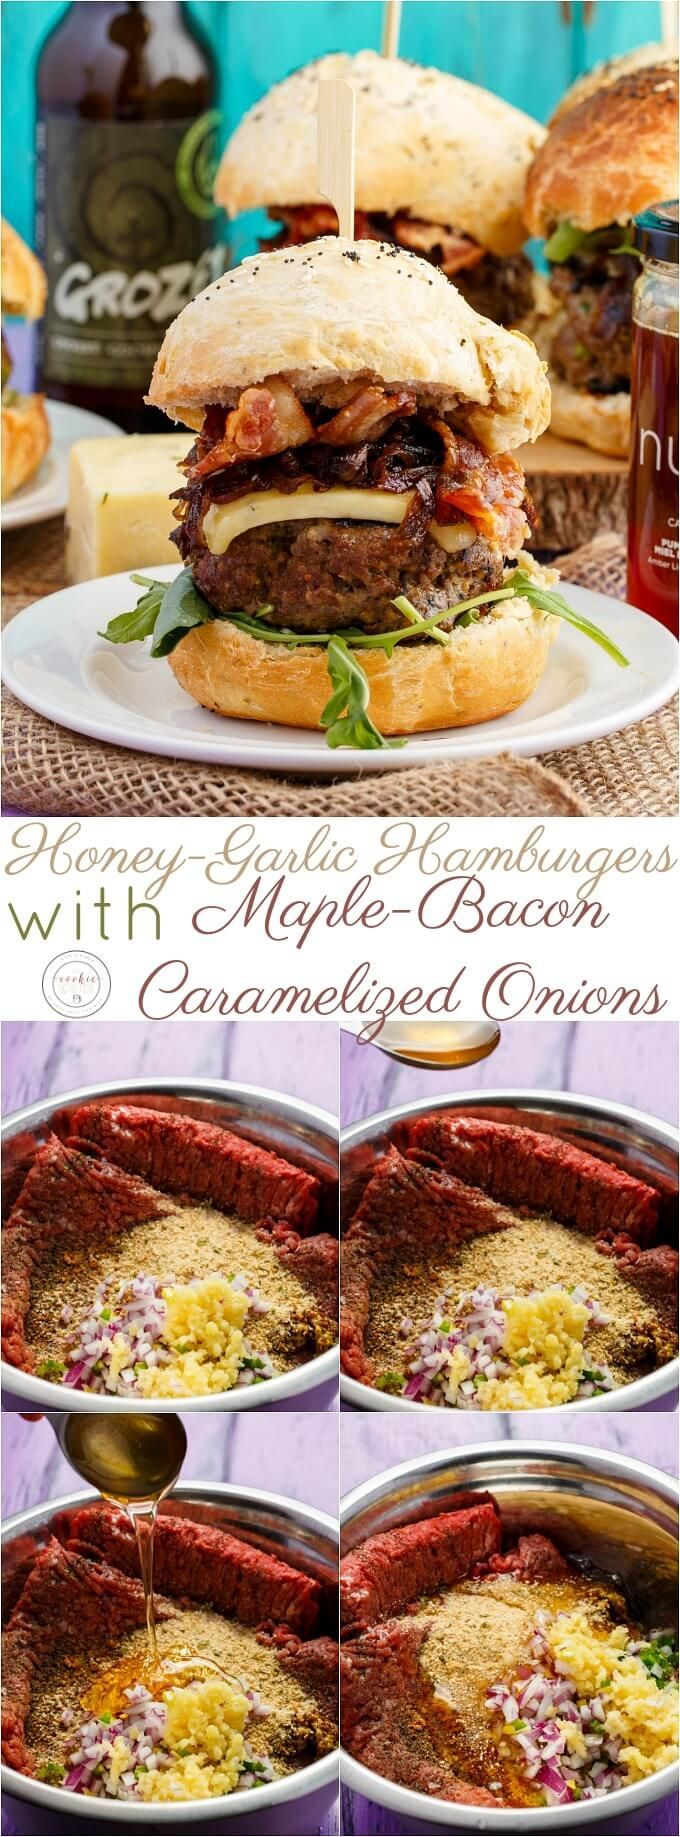 Homemade Honey-Garlic Hamburgers with Maple-Bacon Caramelized Onions | http://thecookiewriter.com | @thecookiewriter | #sponsored | Homemade burgers are the way to go, and this variety is perfect for Canada Day (#Canada150)